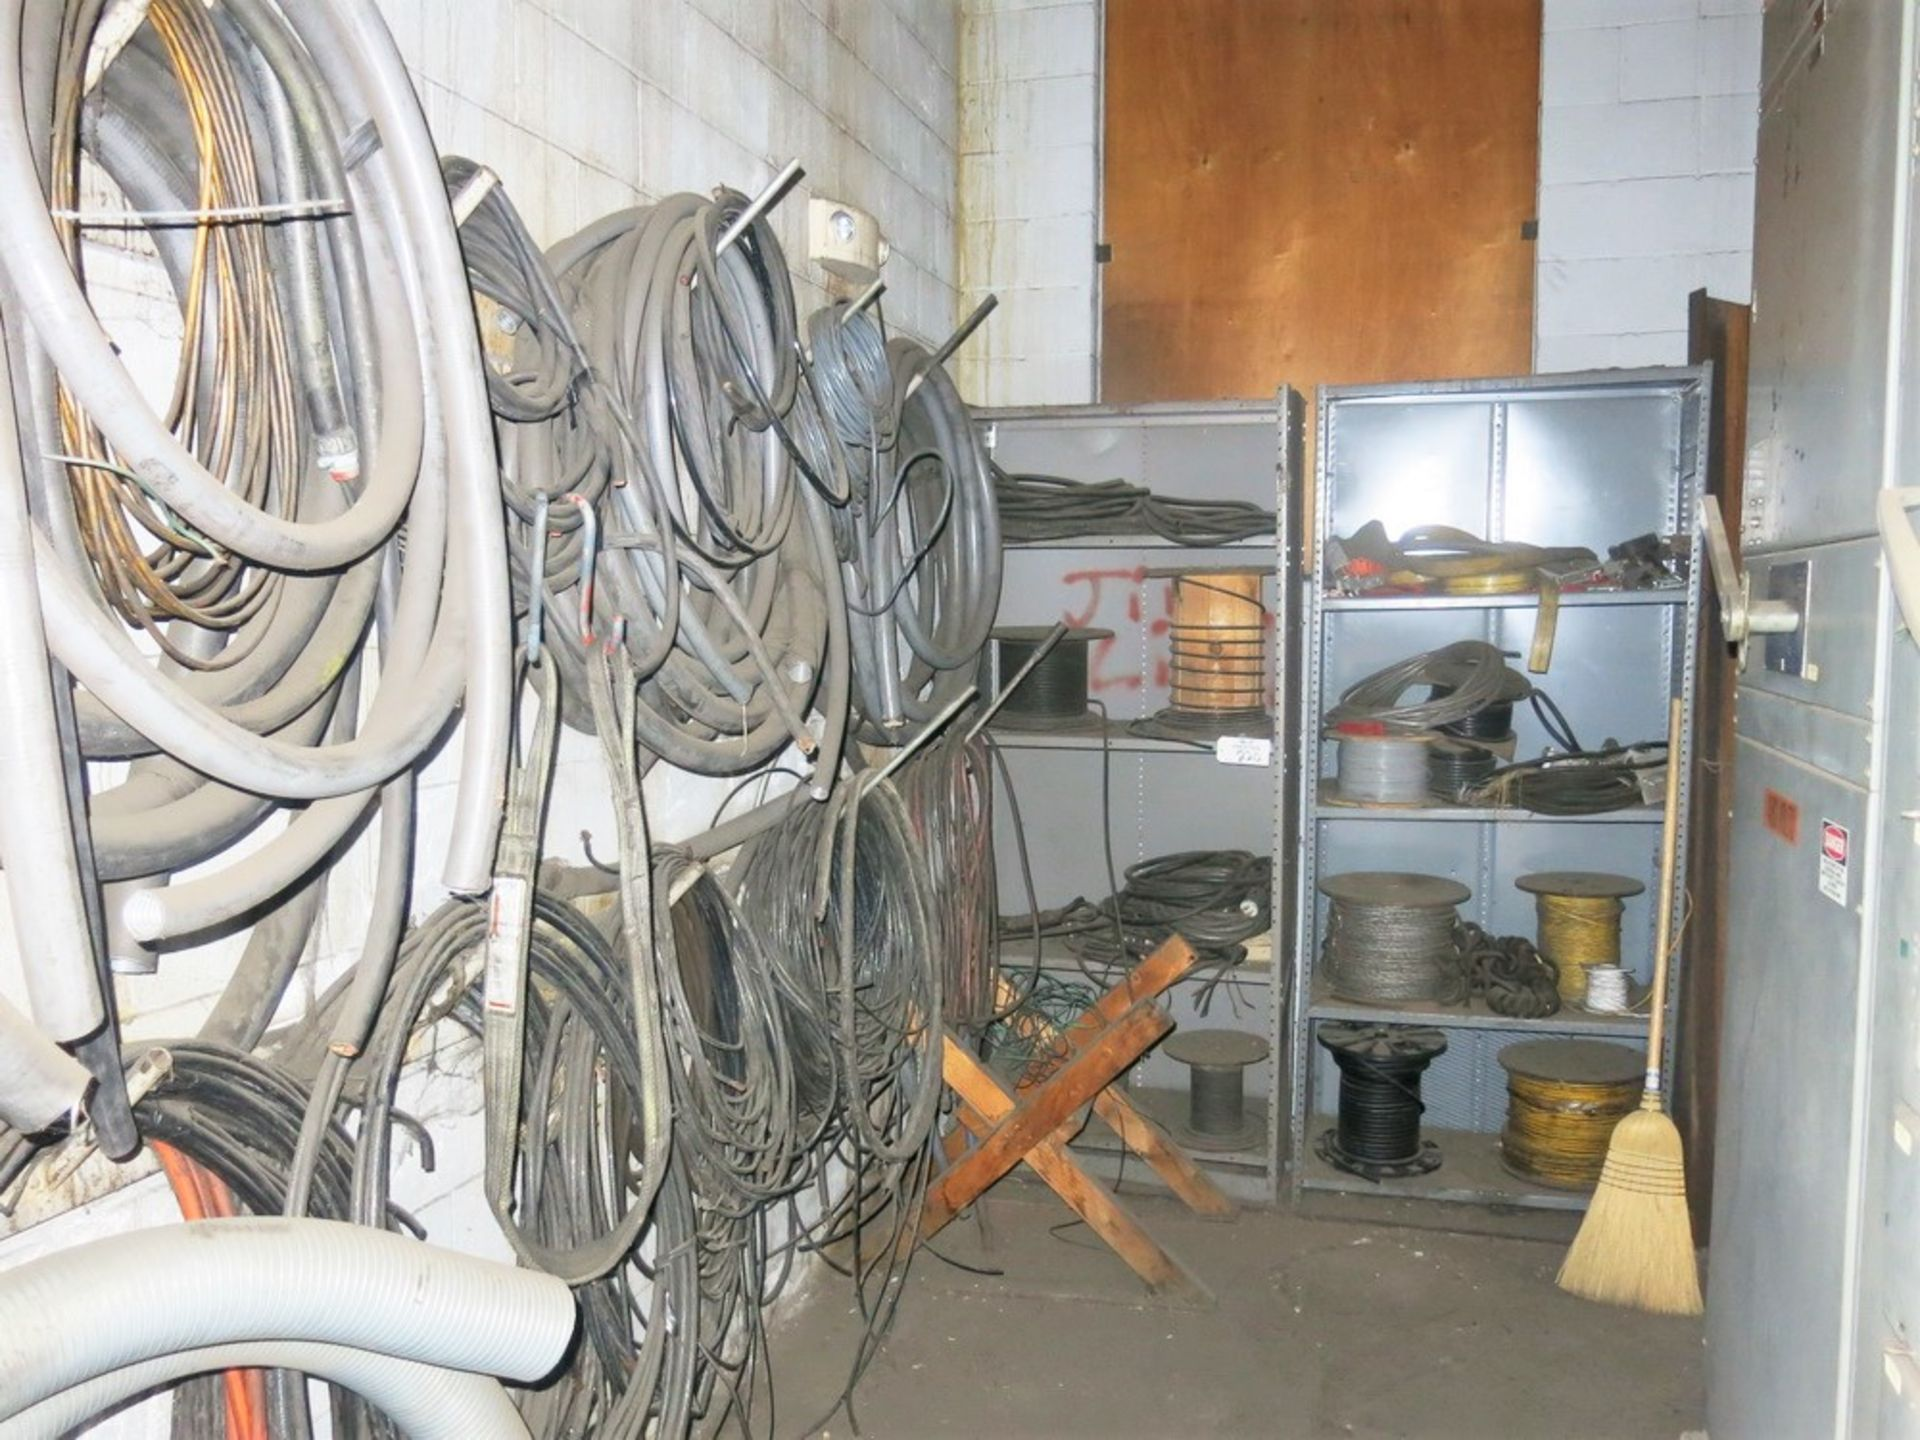 Remaining Contents of Air Compressor Room - Image 5 of 5